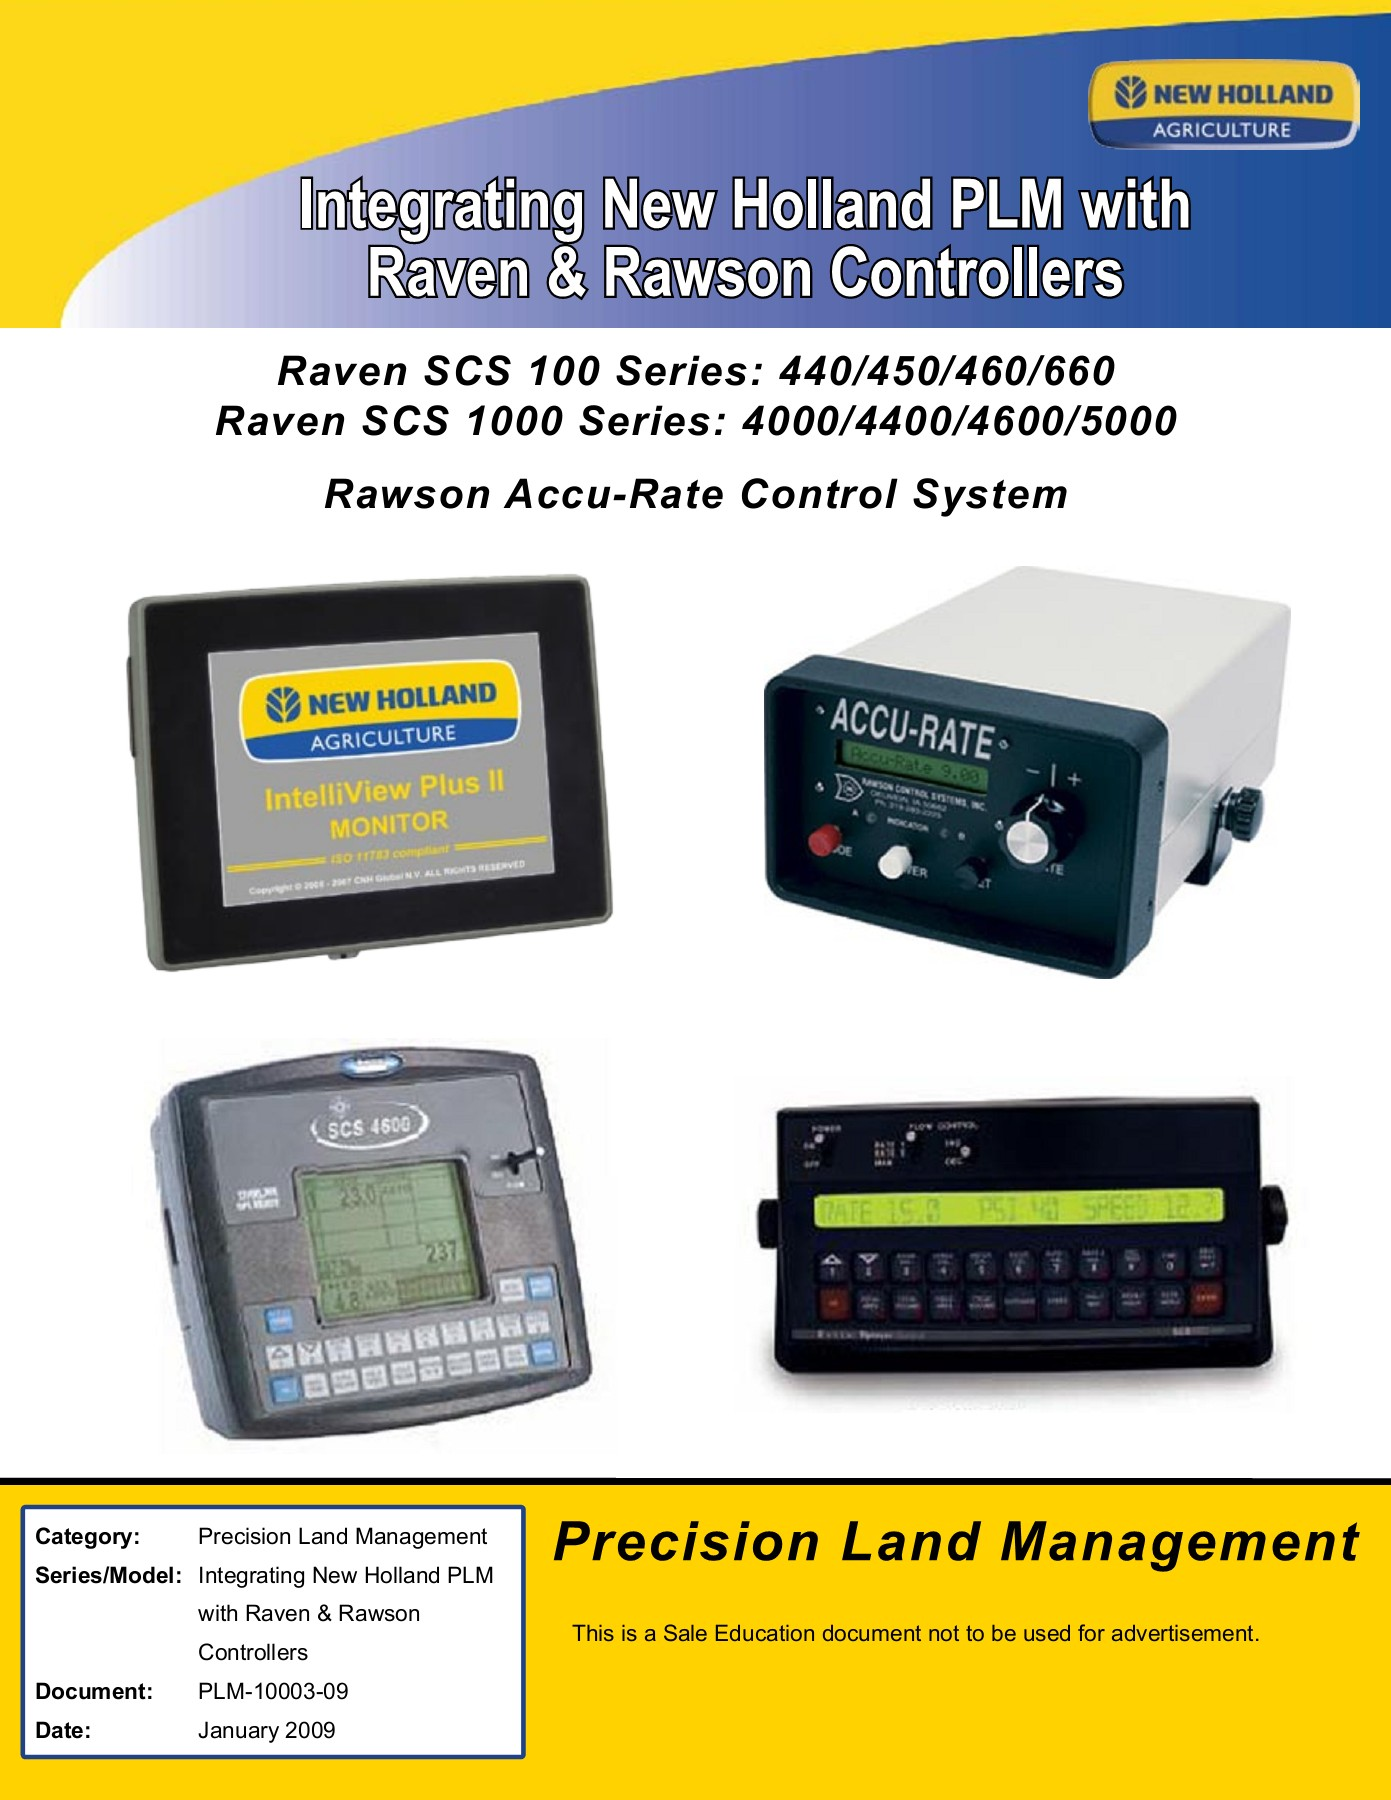 hight resolution of precision land management this is a sale education document not to be used for advertisement integrating new holland plm with raven rawson controllers